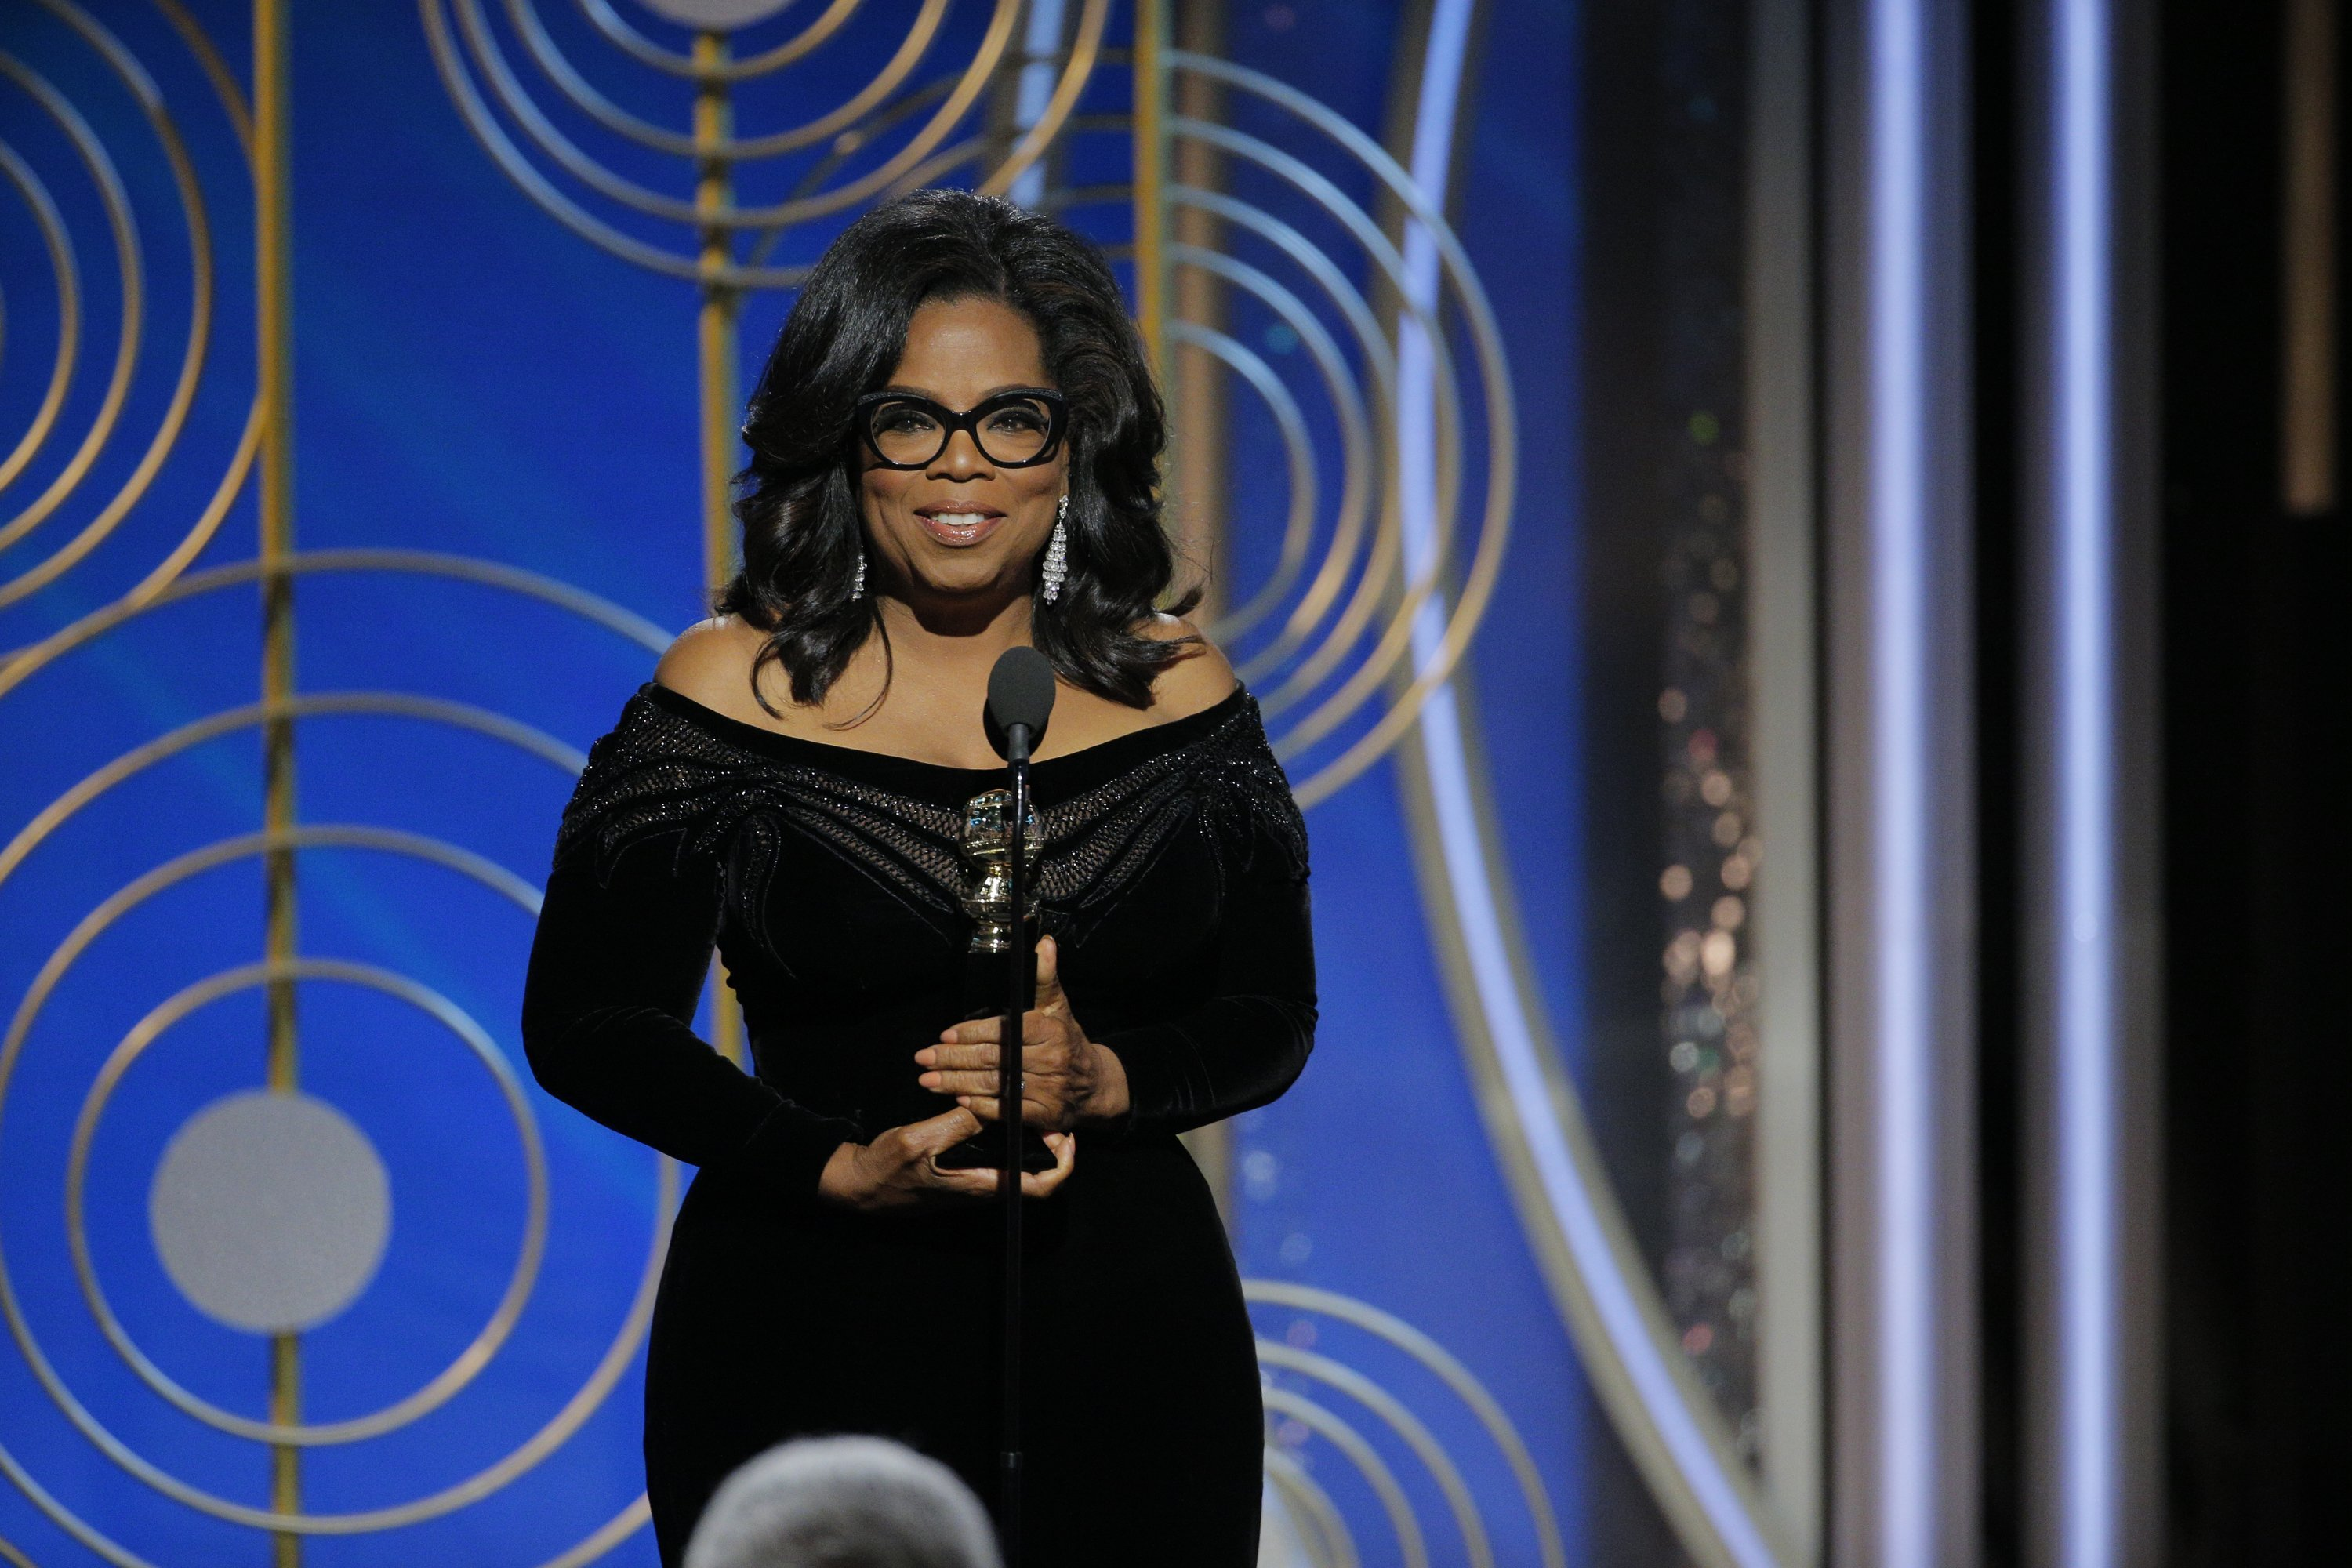 Oprah Winfrey accepts the Cecil B. Demille Award at the 75th Annual Golden Globe Awards held at the Beverly Hilton Hotel